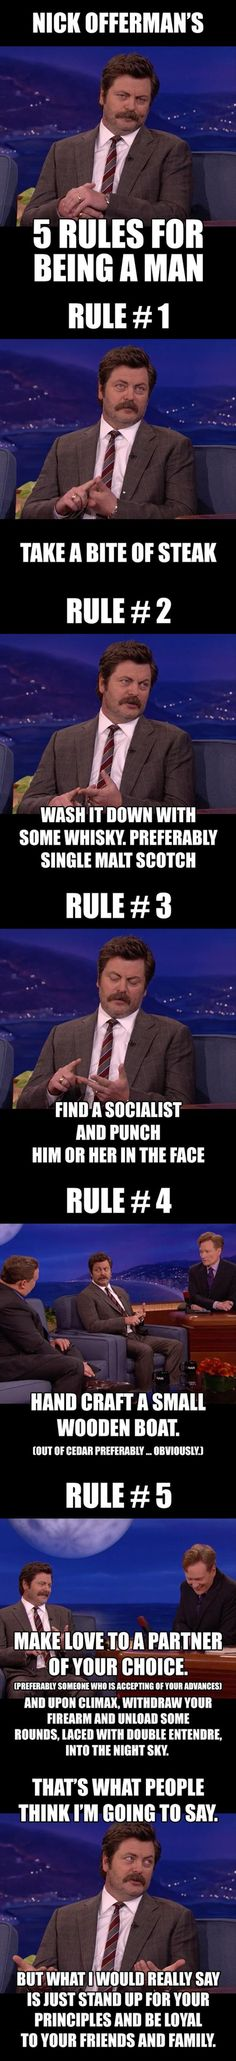 I think Nick Offerman is really Ron Swanson Funny Quotes, Funny Memes, Hilarious, Jokes, Beer Quotes, Parks N Rec, Parks And Recreation, Friday Pictures, Funny Pictures